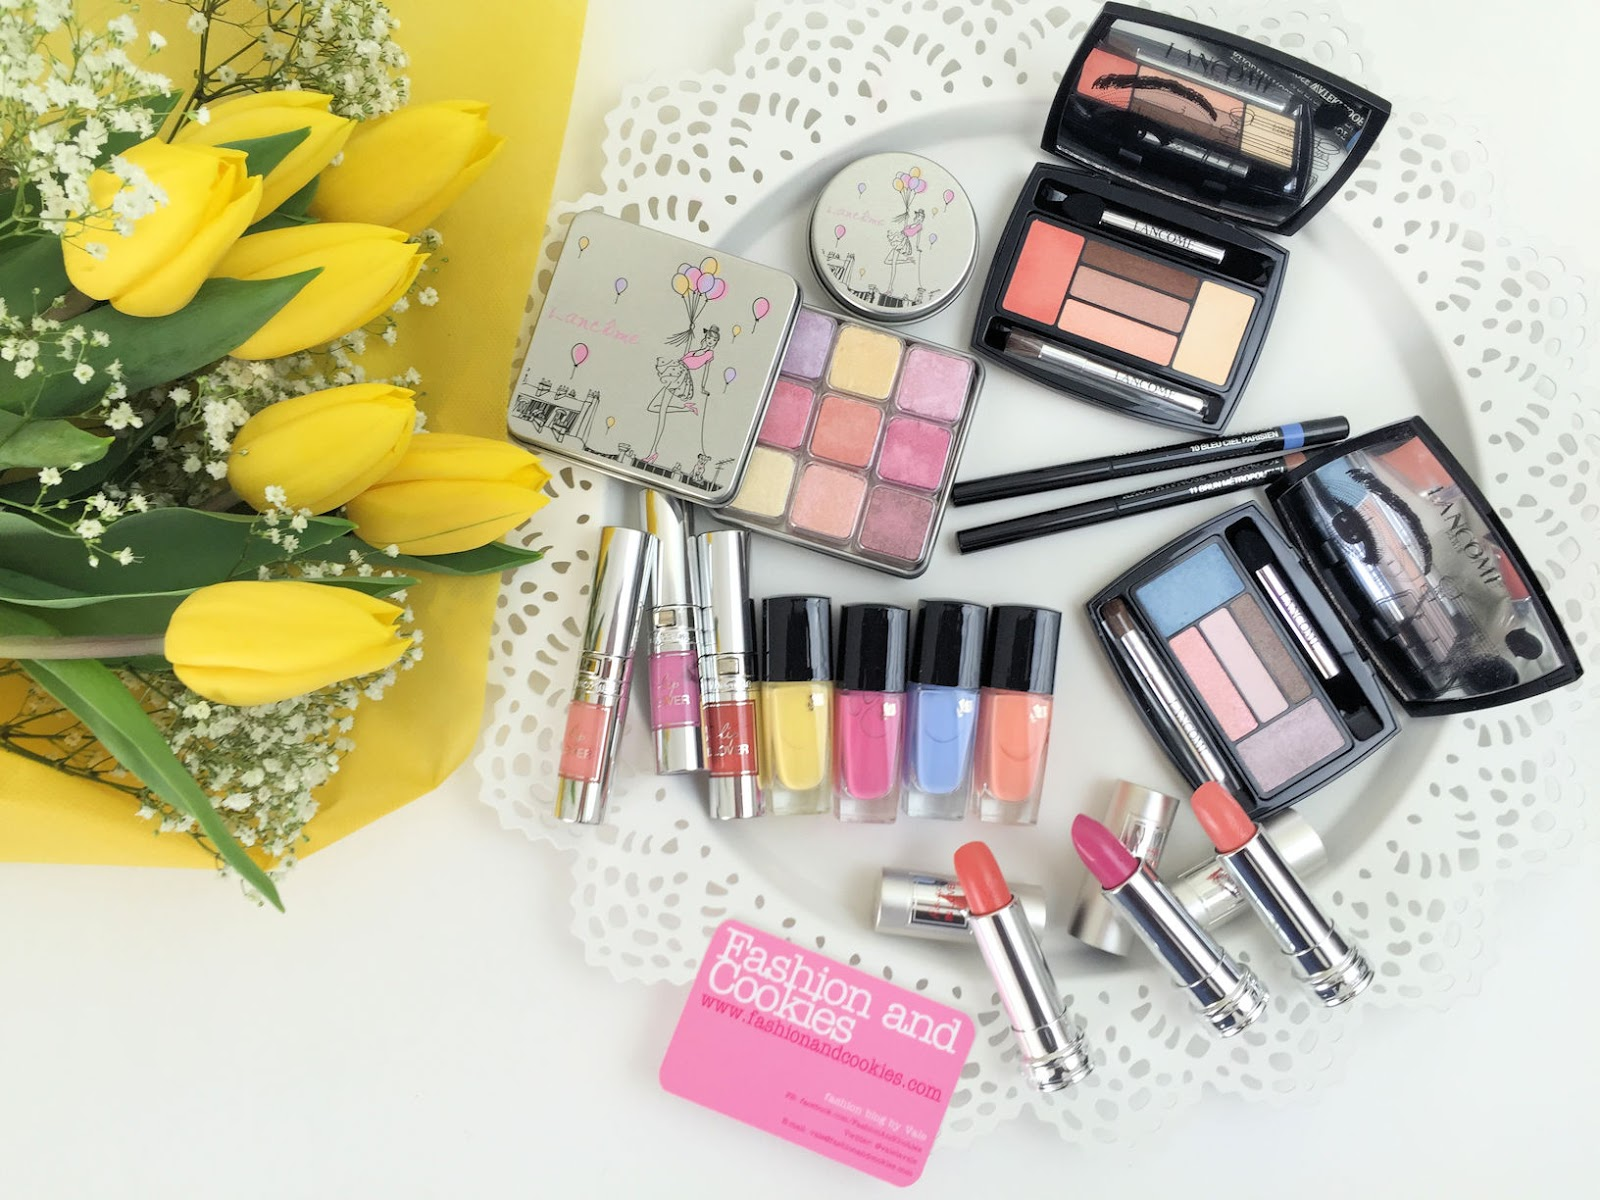 Lancôme makeup collection for Spring 2016 My Parisian Pastels on Fashion and Cookies beauty blog, beauty blogger